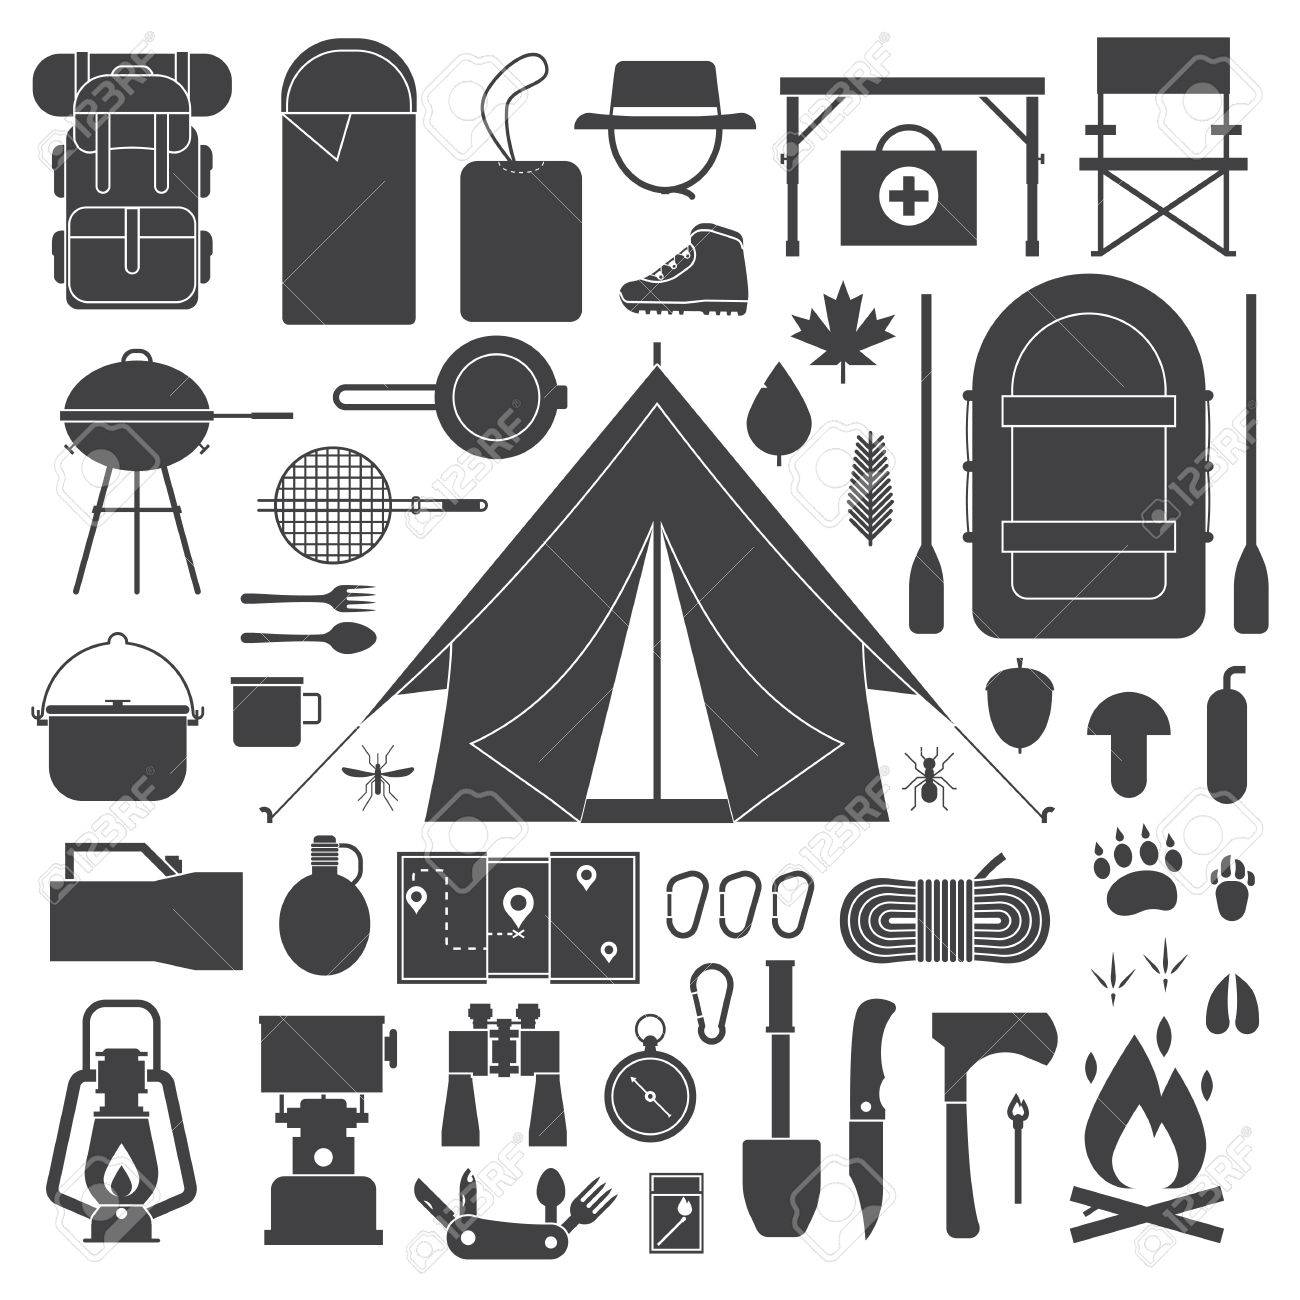 Camping Vector Outline Icons Collection Hiking Outdoor Elements Kit Camp And Hike Gear Icon